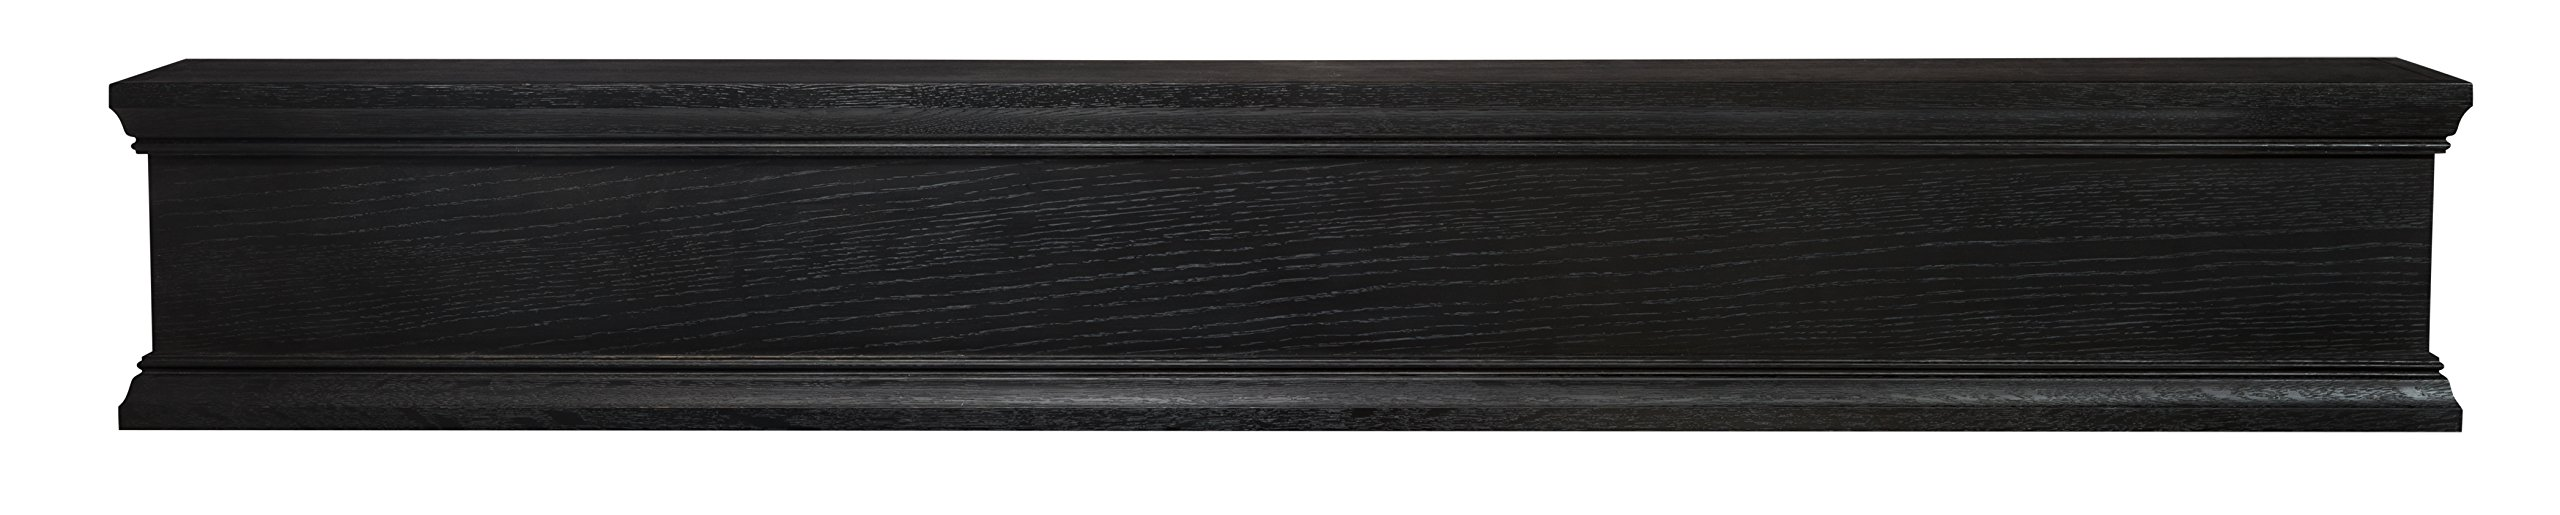 Pearl Mantels 426-72-18 Winchester Mantel Shelf, 72-Inch, Ebony Wash Finish